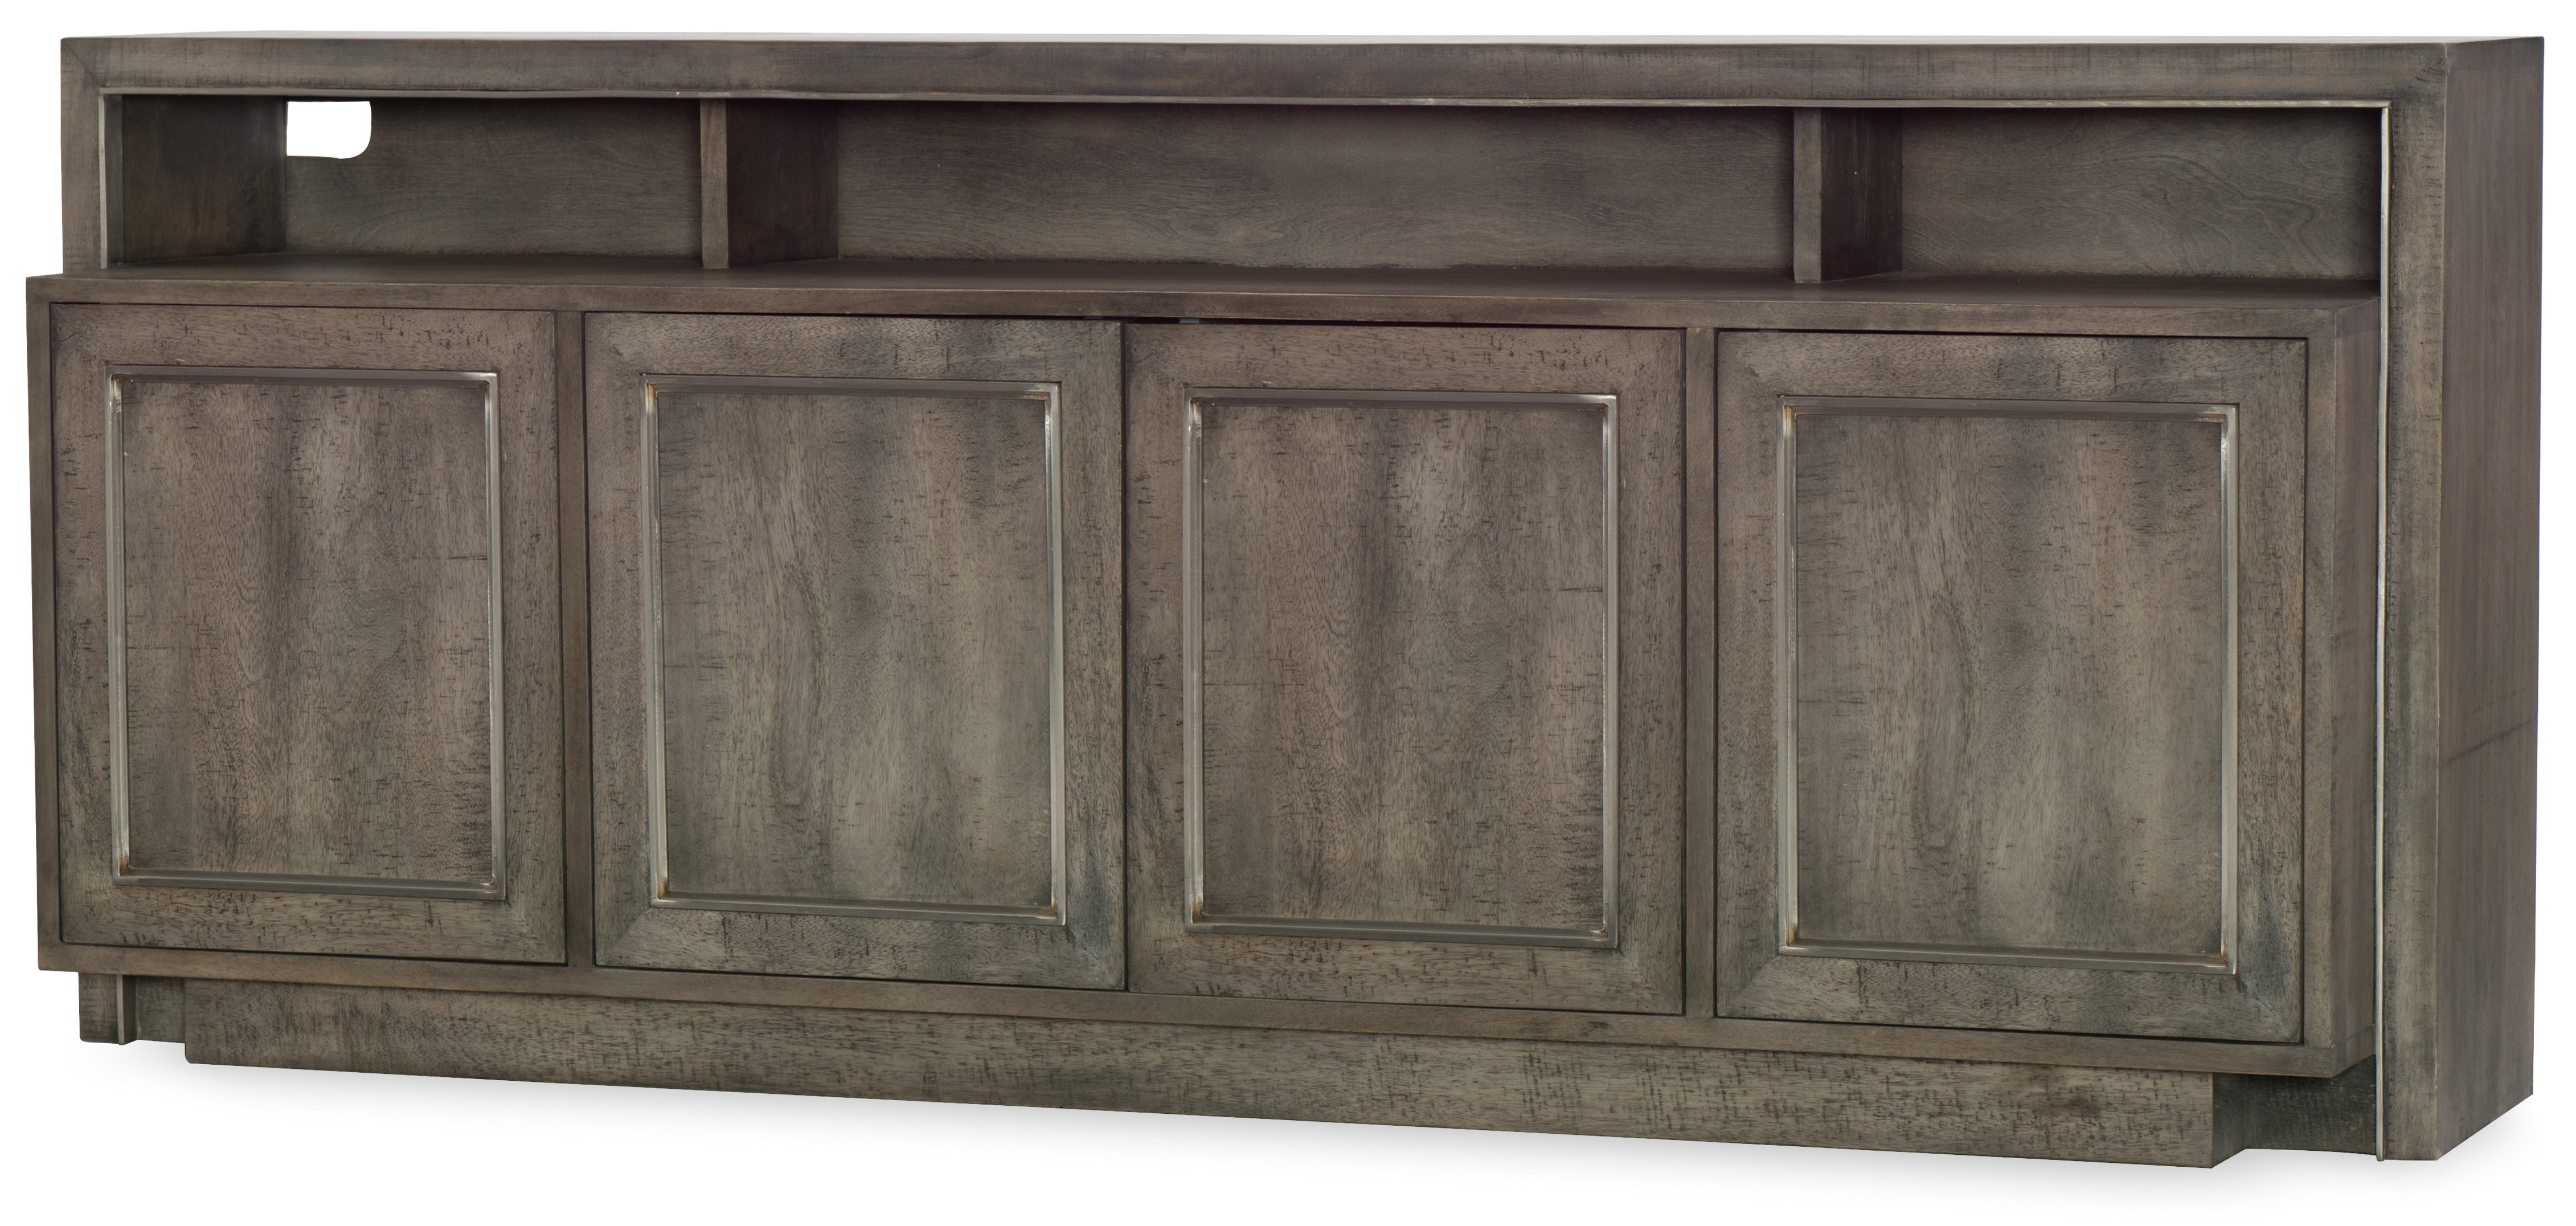 70 Inches And Larger Tv Stands | Joss & Main With Walton 72 Inch Tv Stands (View 15 of 20)